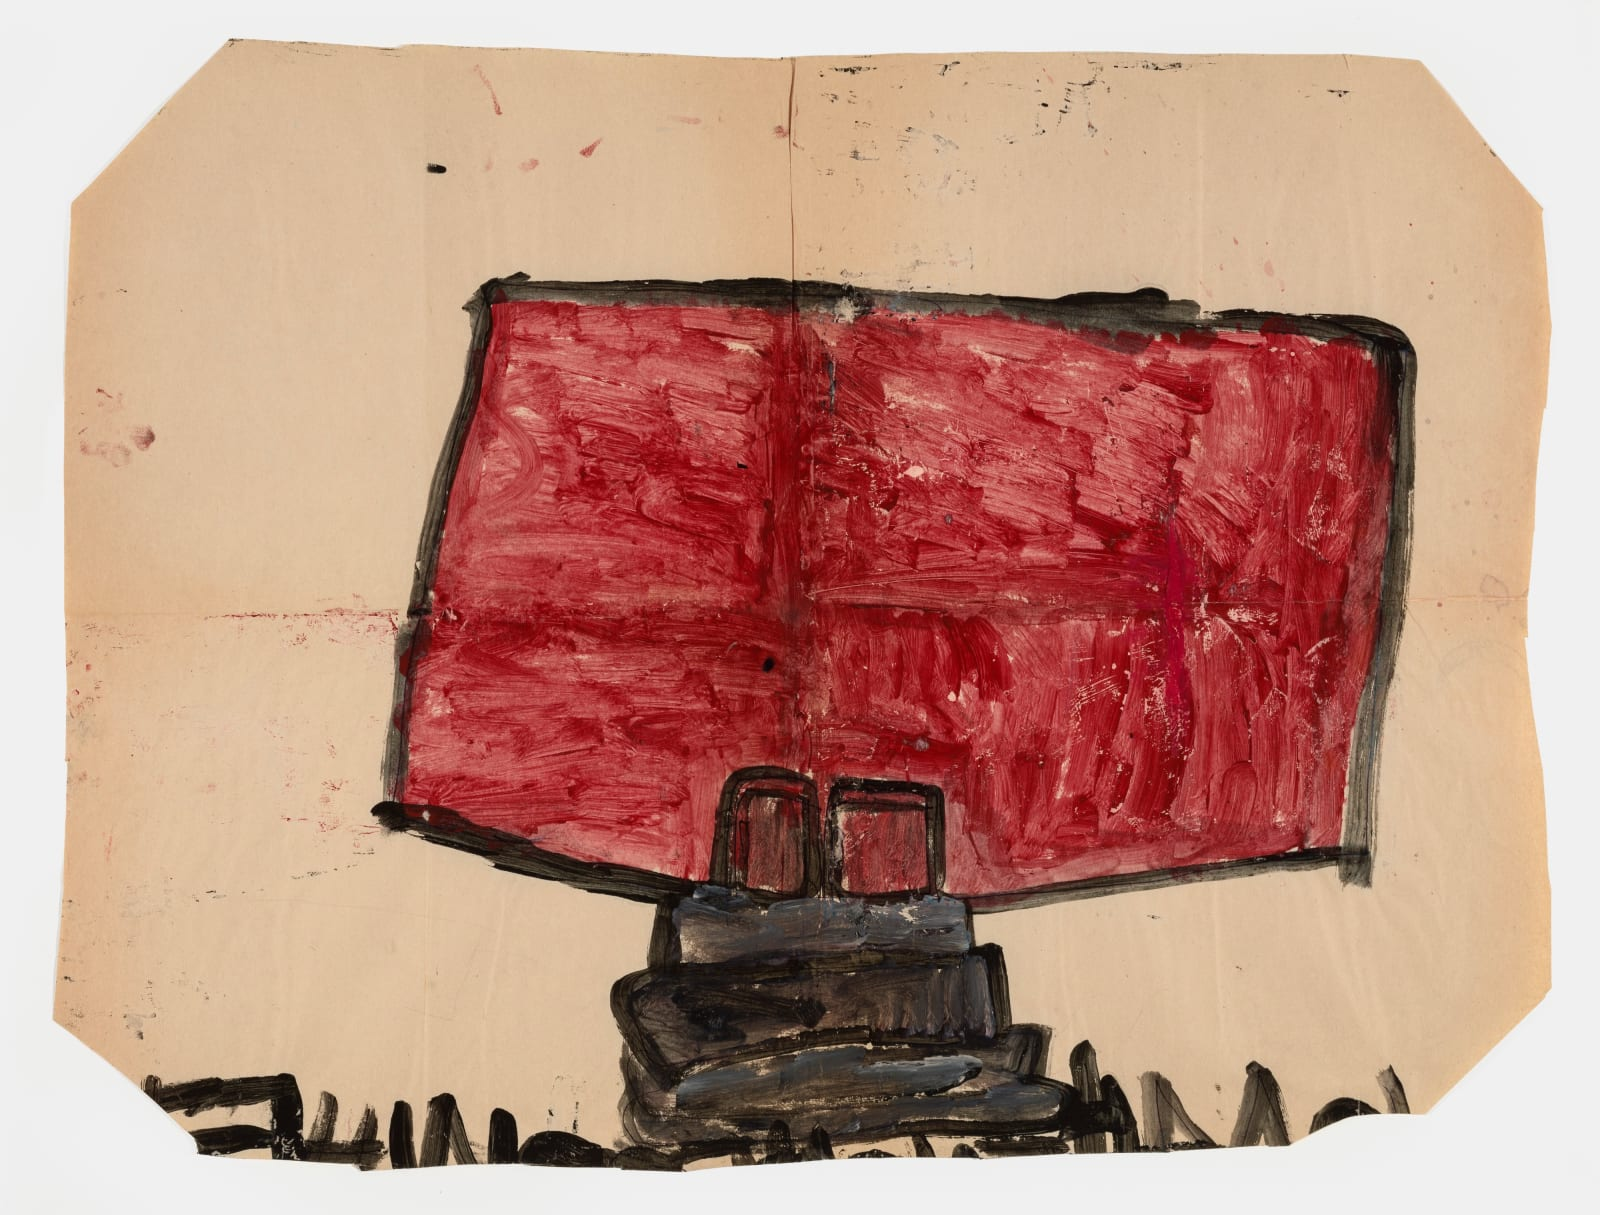 Untitled (No.18), 1972-1980 Tempera on paper 21 x 28 in (53.3 x 71.1 cm) (LM 158)